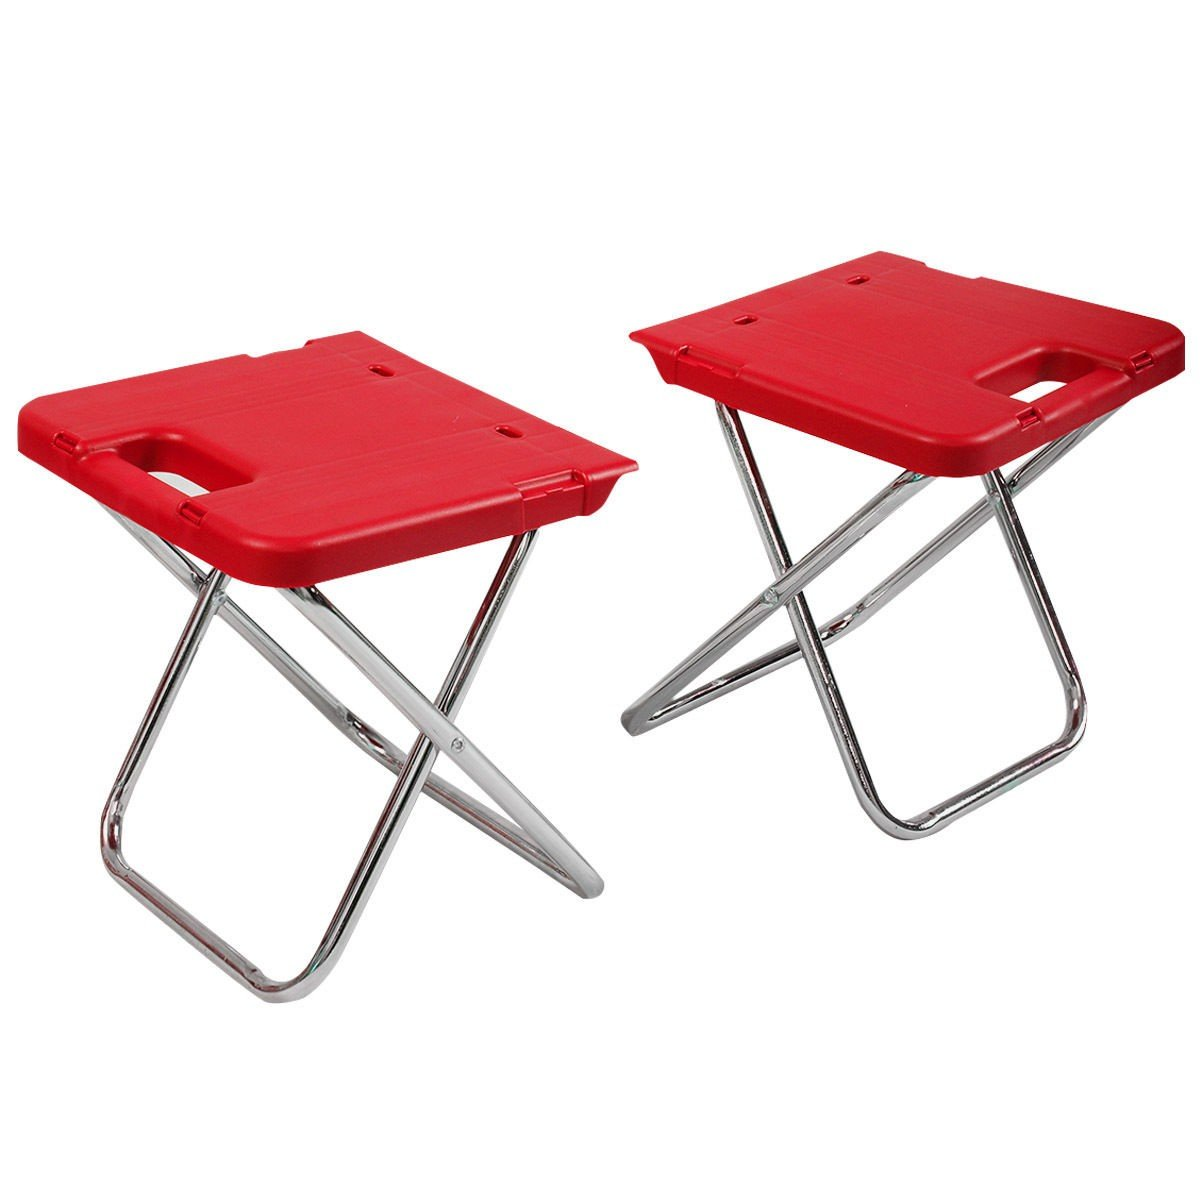 CHOOSEandBUY Multi Functional Rolling Picnic Cooler w/Table & 2 Chairs - RED by CHOOSEandBUY (Image #8)